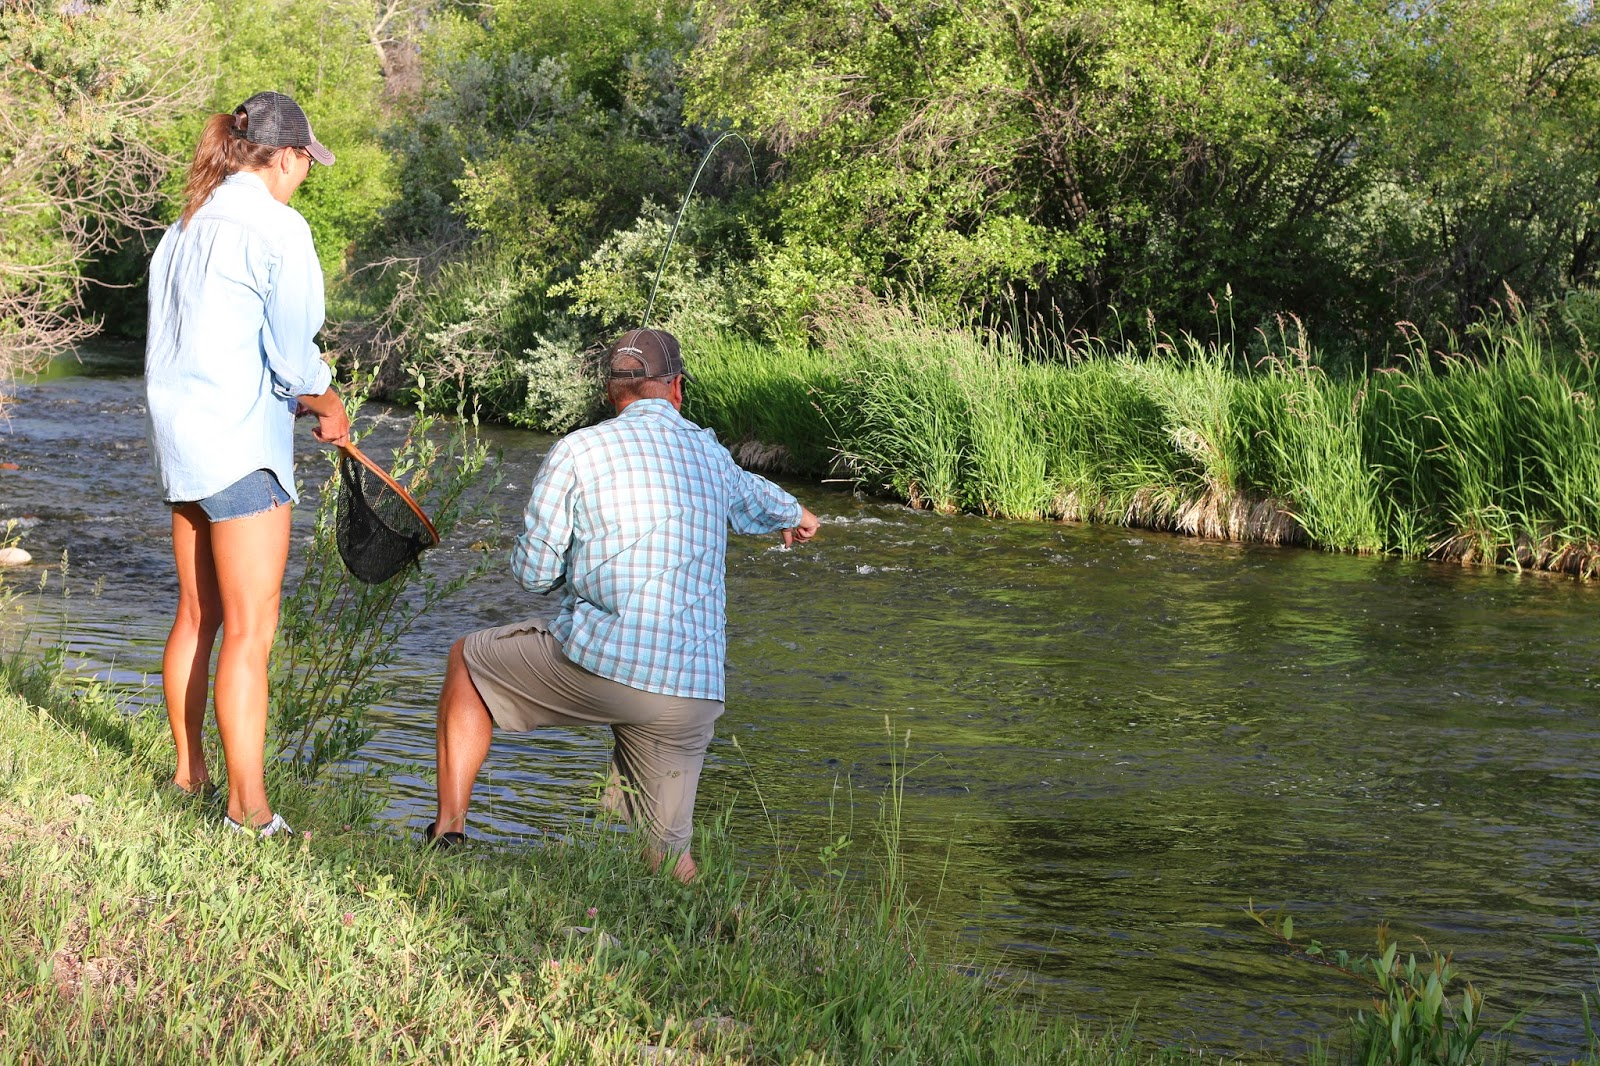 Roaring+fork+river+fly+fishing+with+Jay+Scott+Outdoors+1.JPG